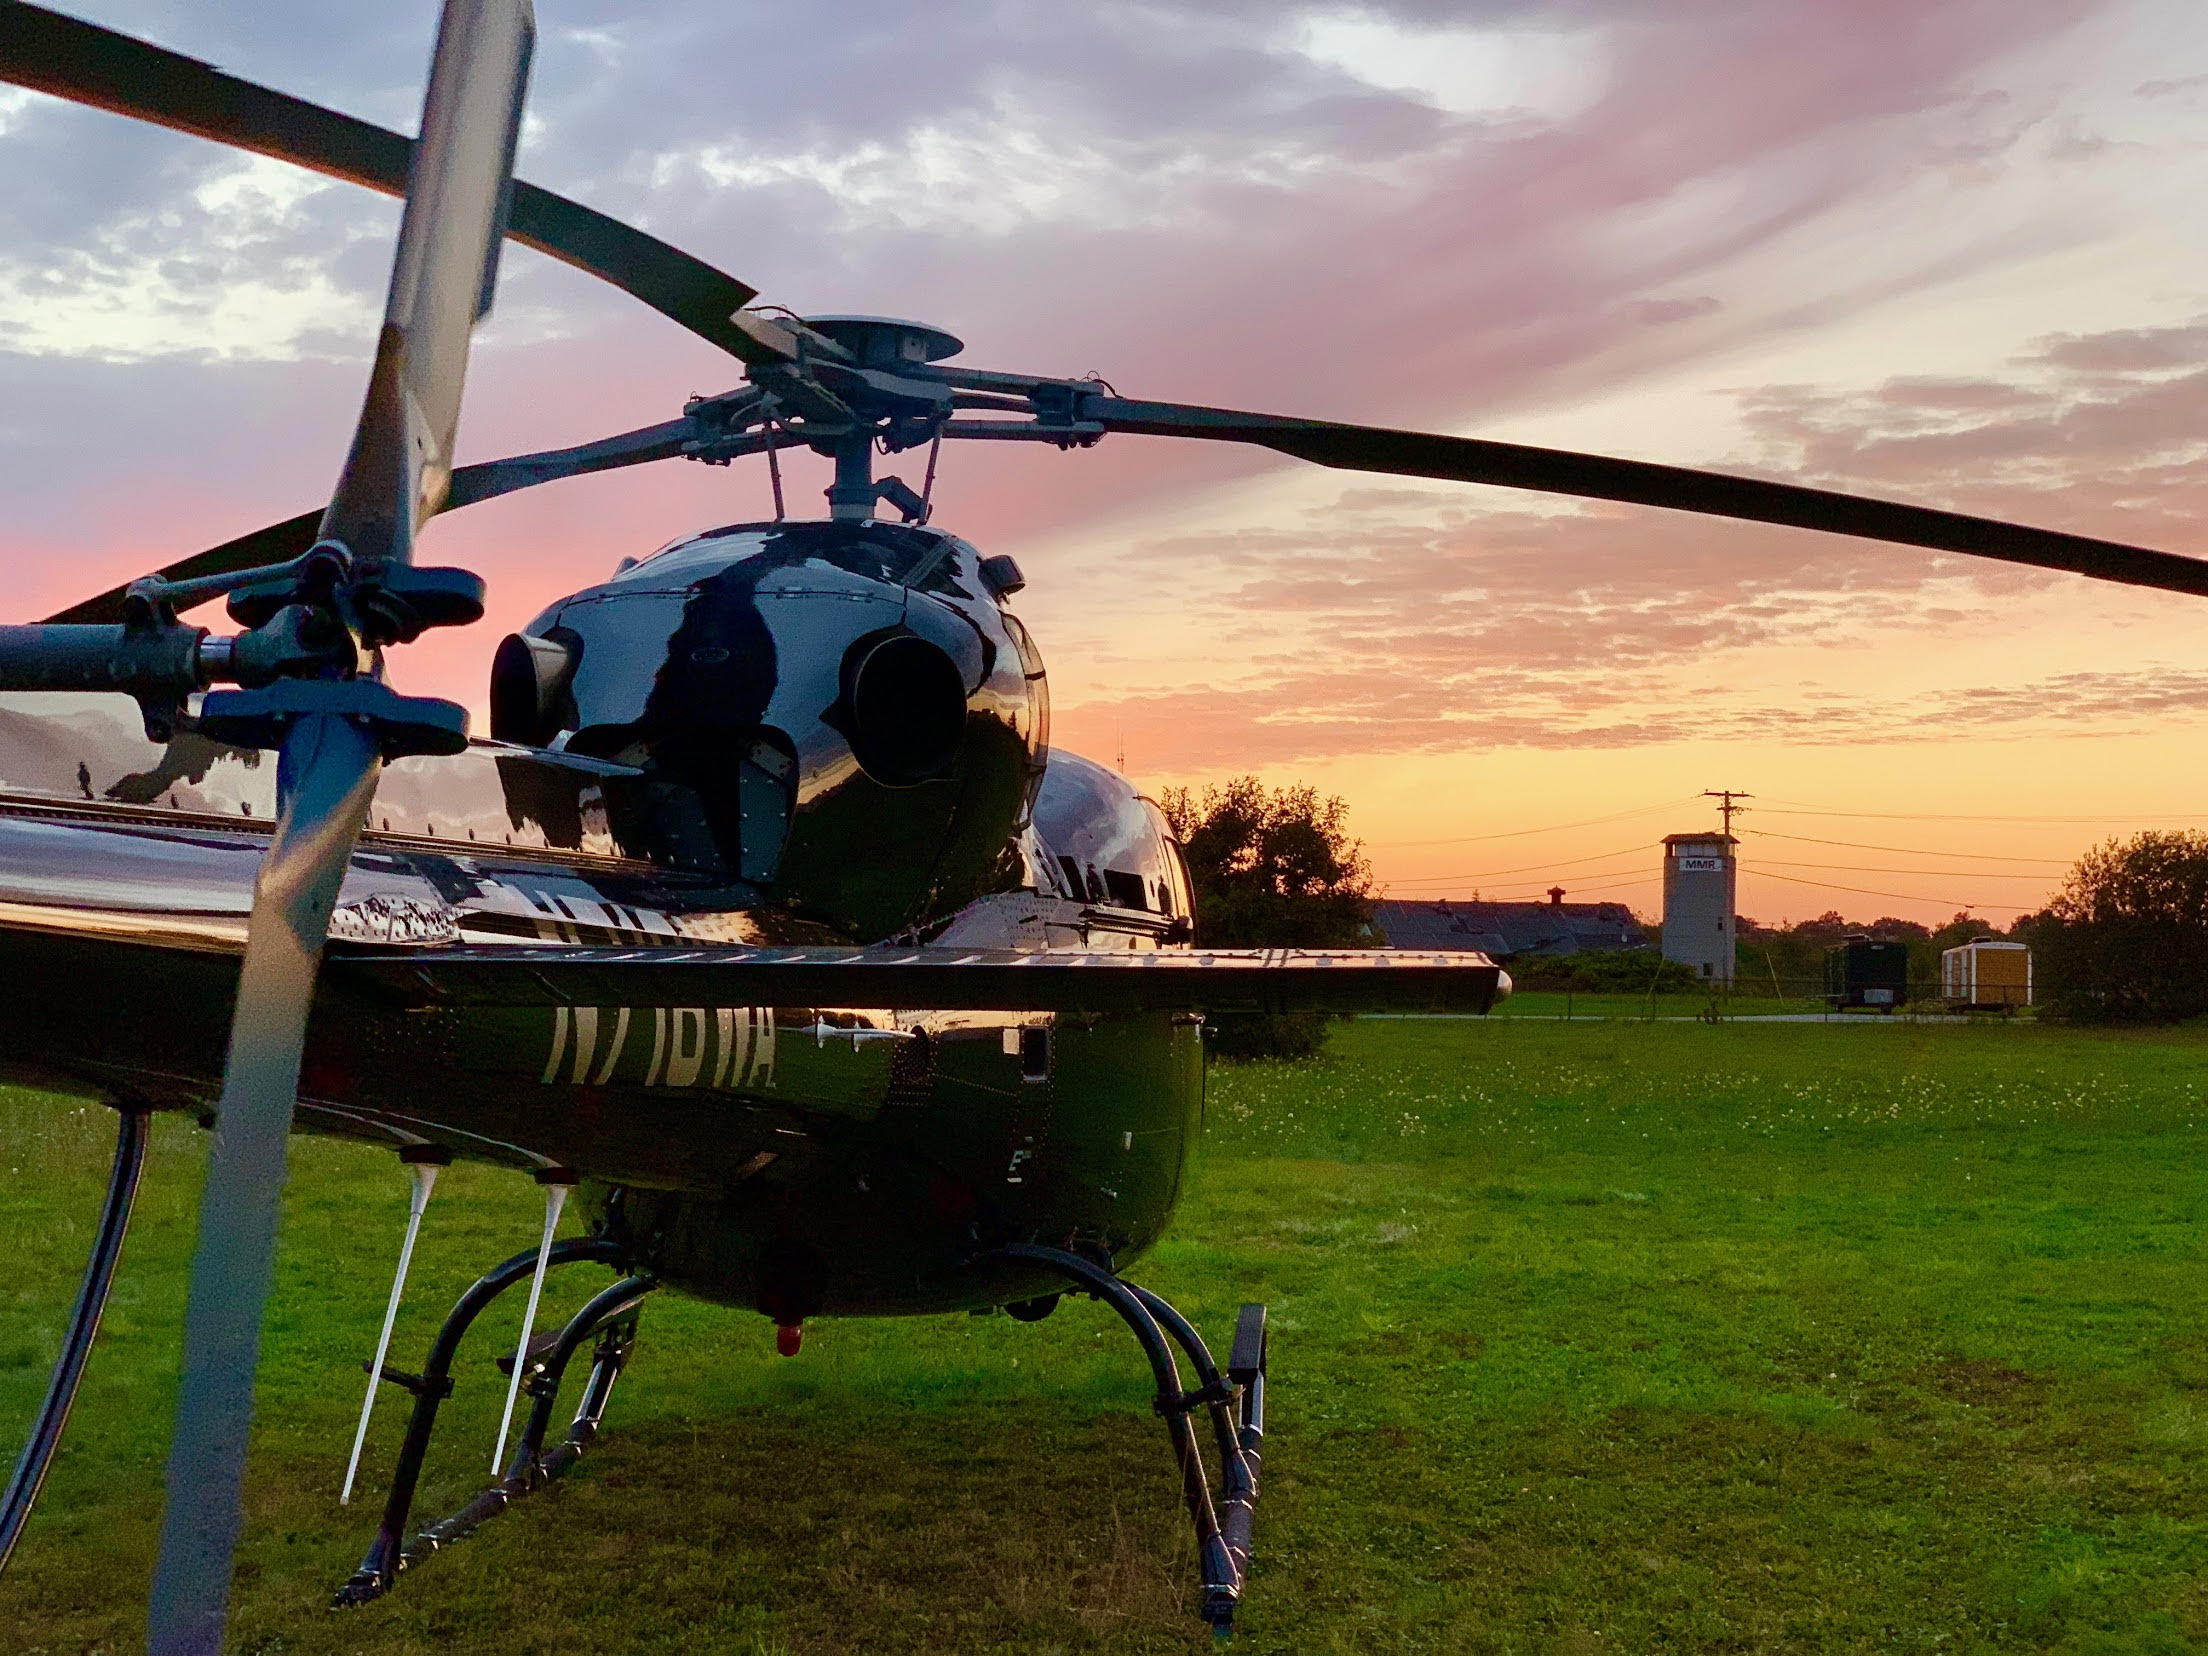 Twin Star Helicopter on the ground during sunset